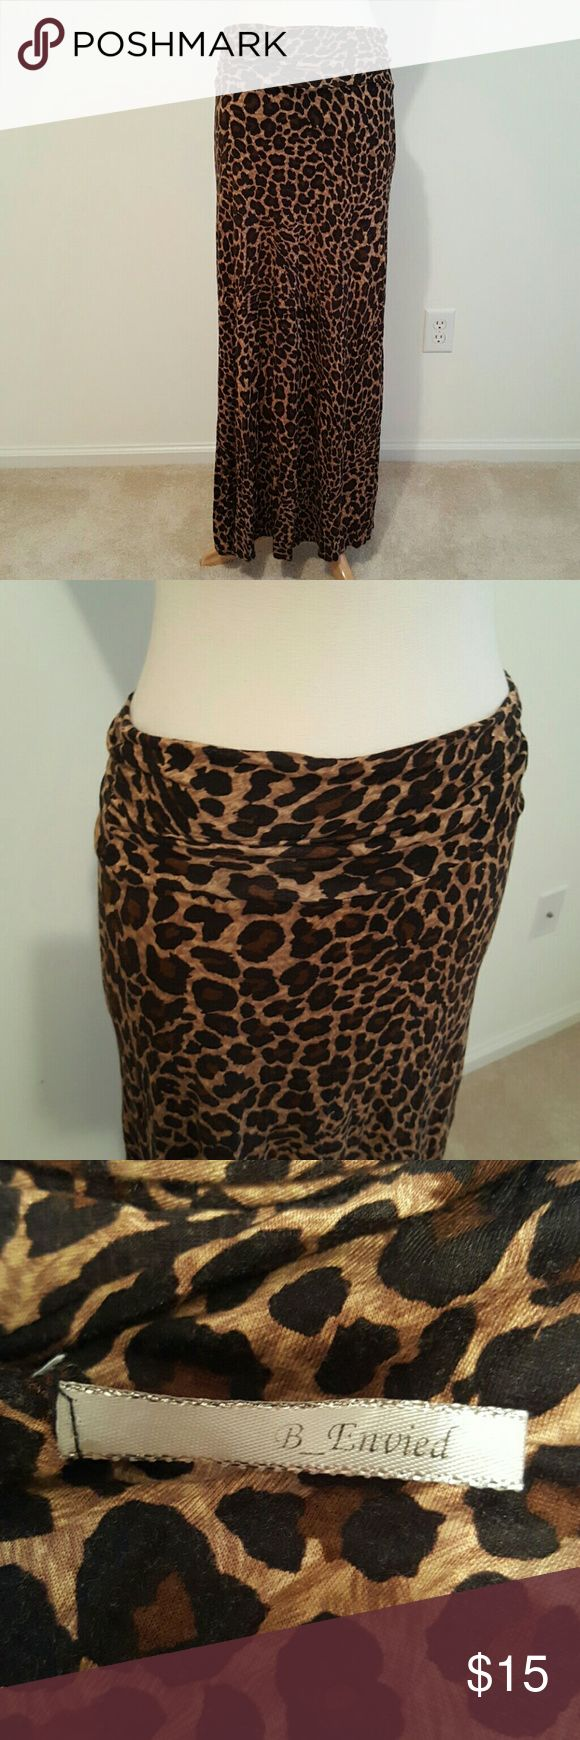 Leopard maxi skirt 👒Excellent condition. Unsure of size and fabric content as tags are not attached. B. Envied Skirts Maxi